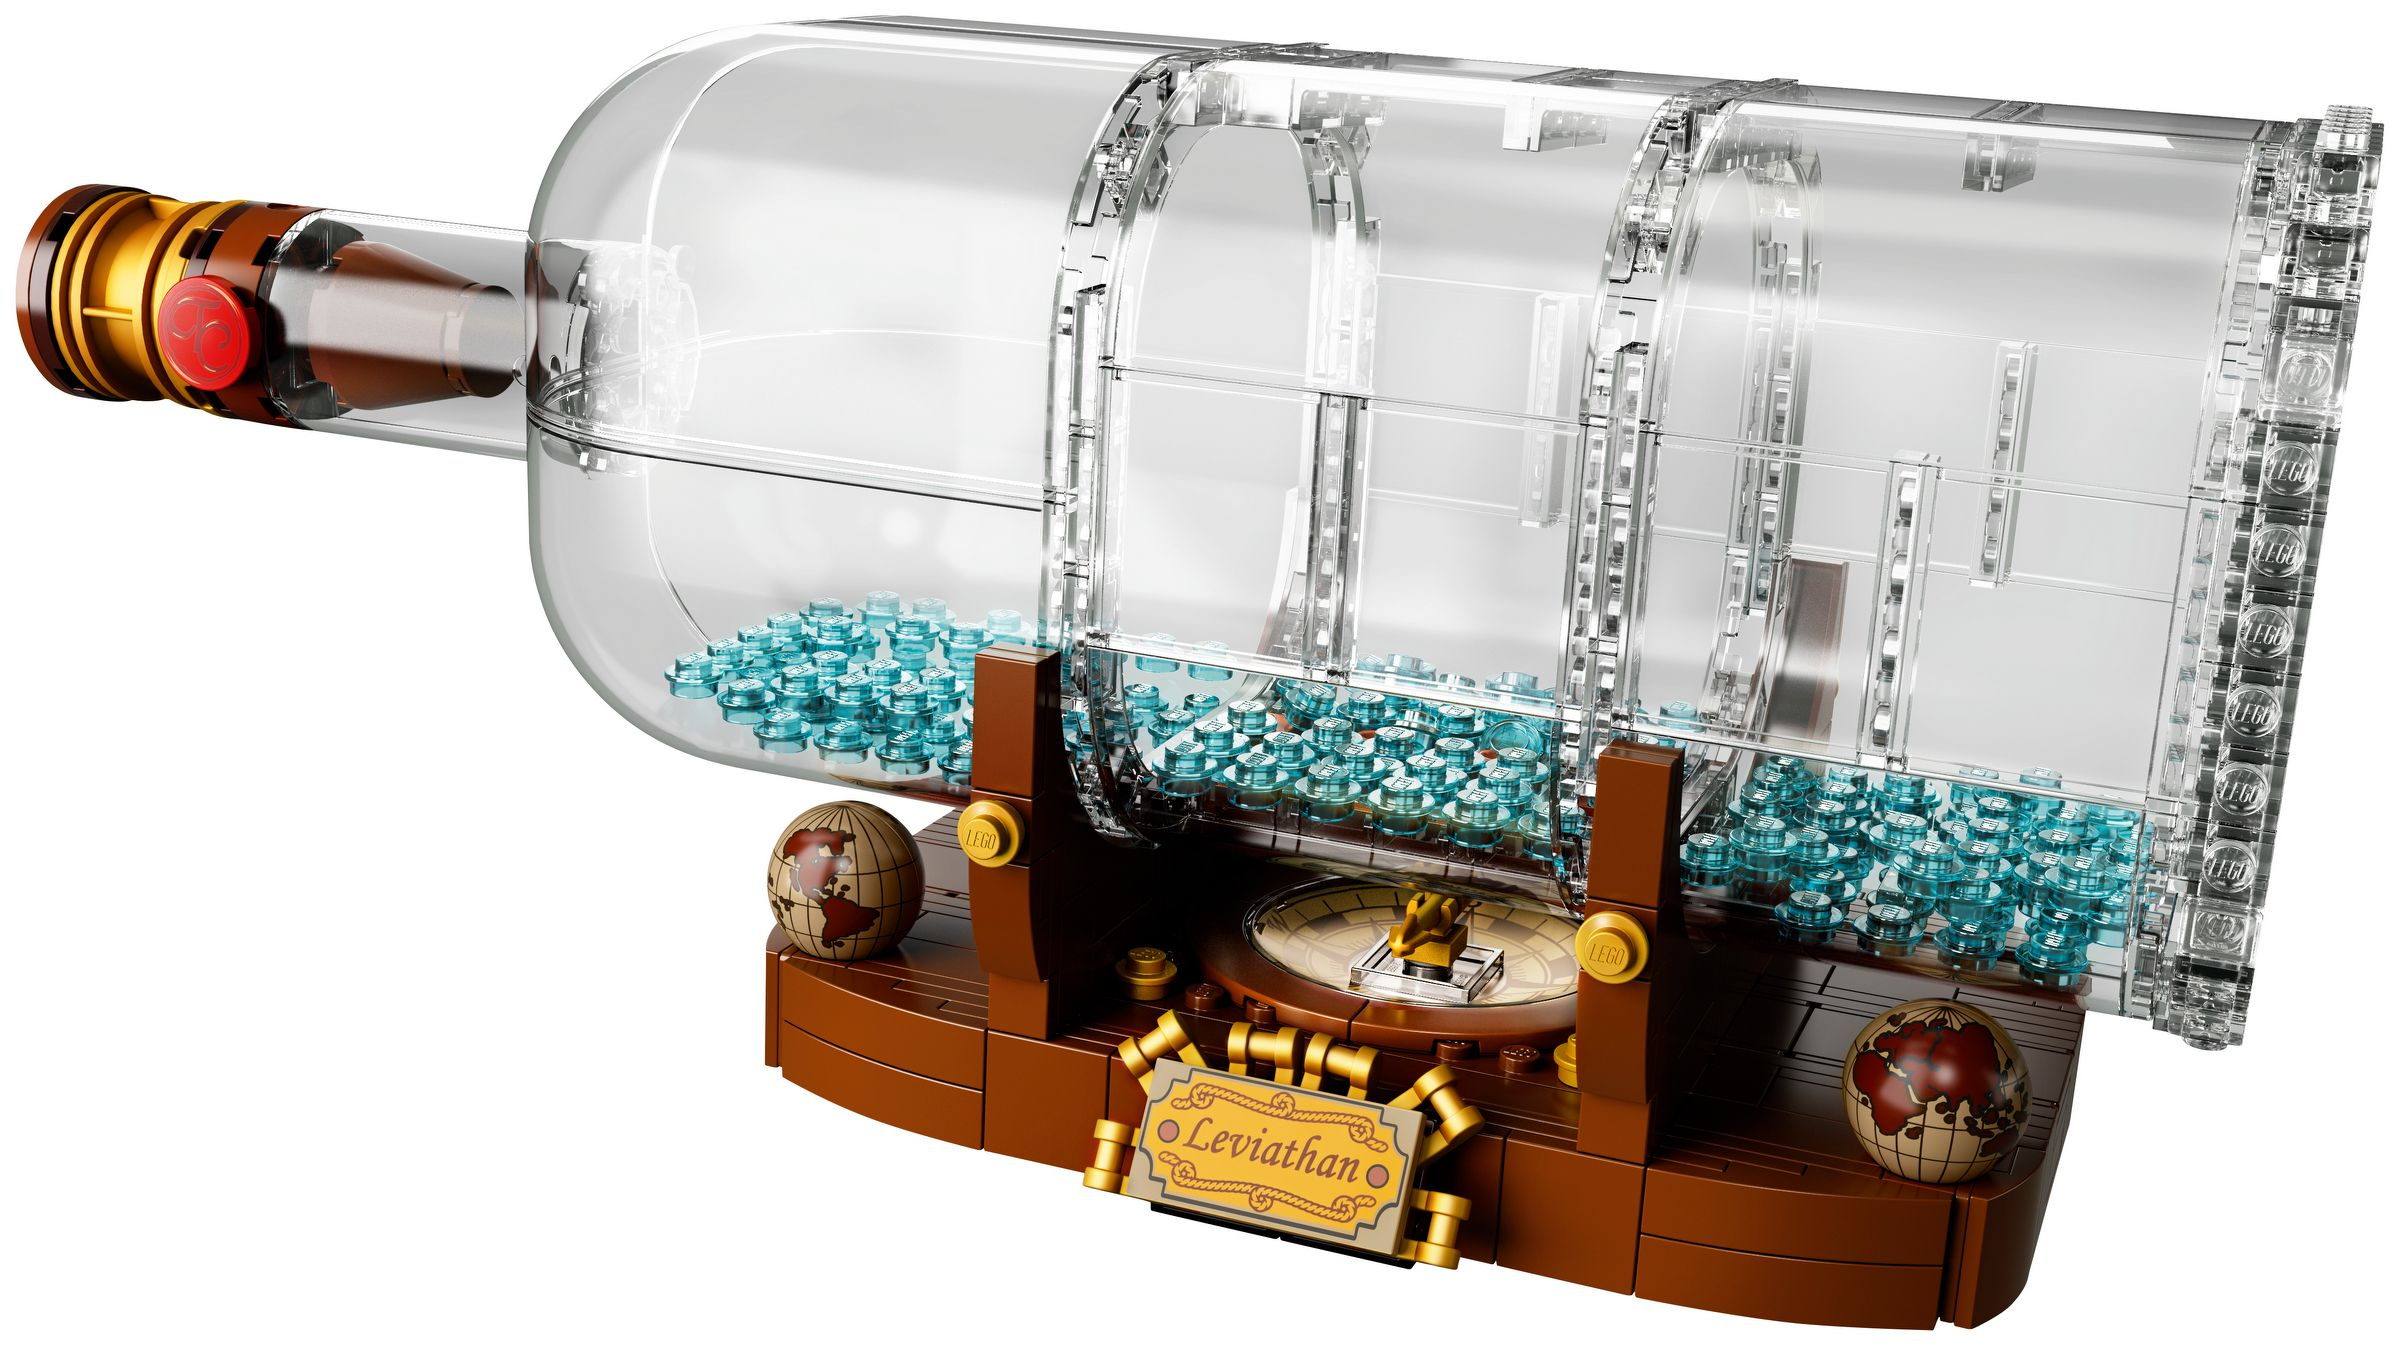 lego 21313 schiff in der flasche ideas 2018 ab 61 69 ship in a bottle brickmerge. Black Bedroom Furniture Sets. Home Design Ideas